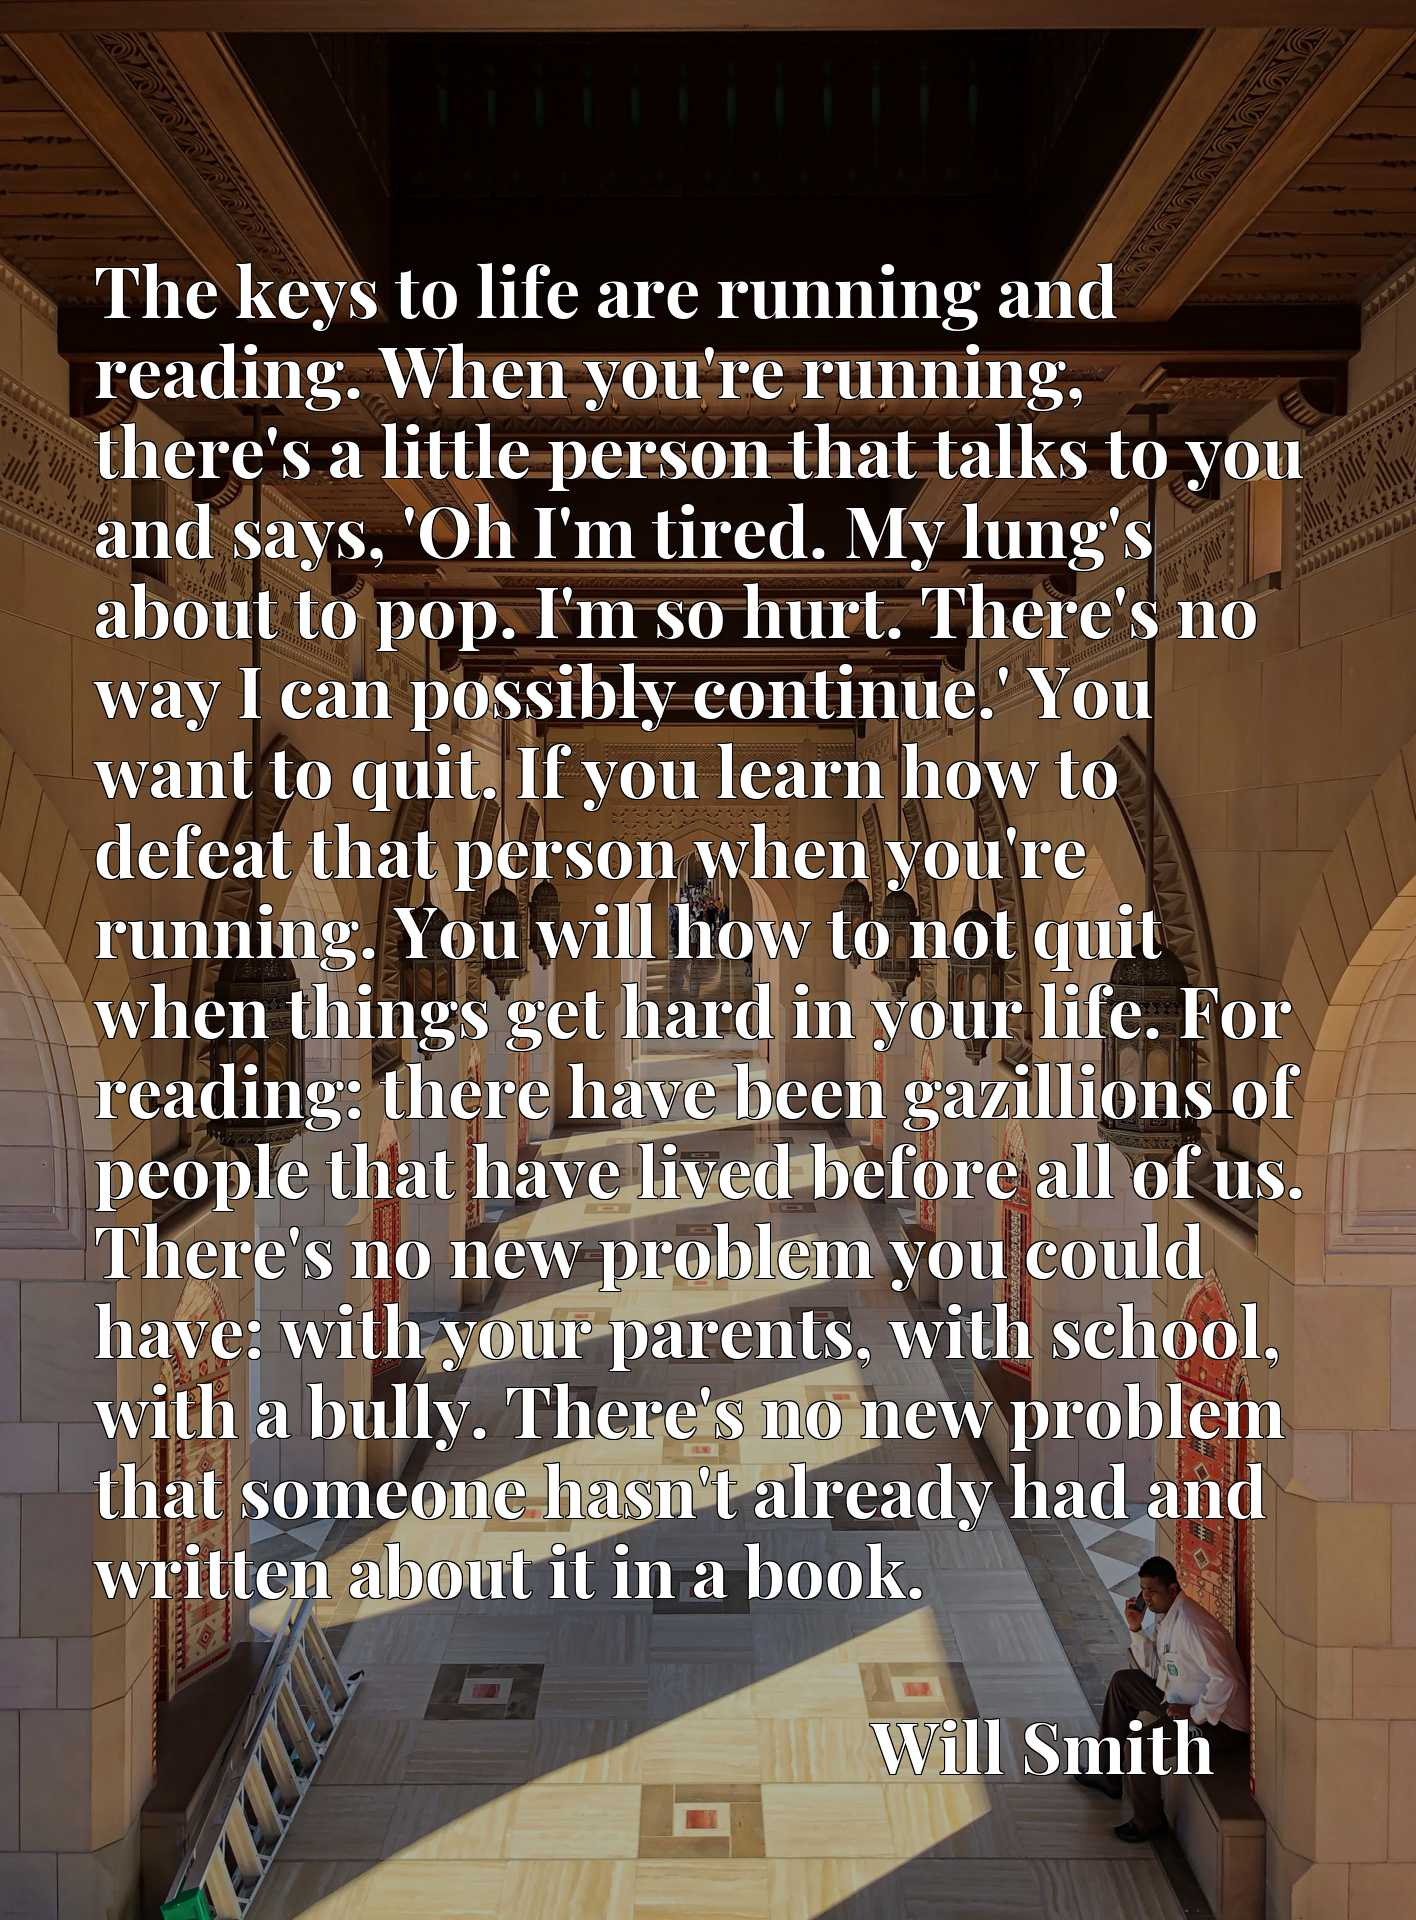 The keys to life are running and reading. When you're running, there's a little person that talks to you and says, 'Oh I'm tired. My lung's about to pop. I'm so hurt. There's no way I can possibly continue.' You want to quit. If you learn how to defeat that person when you're running. You will how to not quit when things get hard in your life. For reading: there have been gazillions of people that have lived before all of us. There's no new problem you could have: with your parents, with school, with a bully. There's no new problem that someone hasn't already had and written about it in a book.